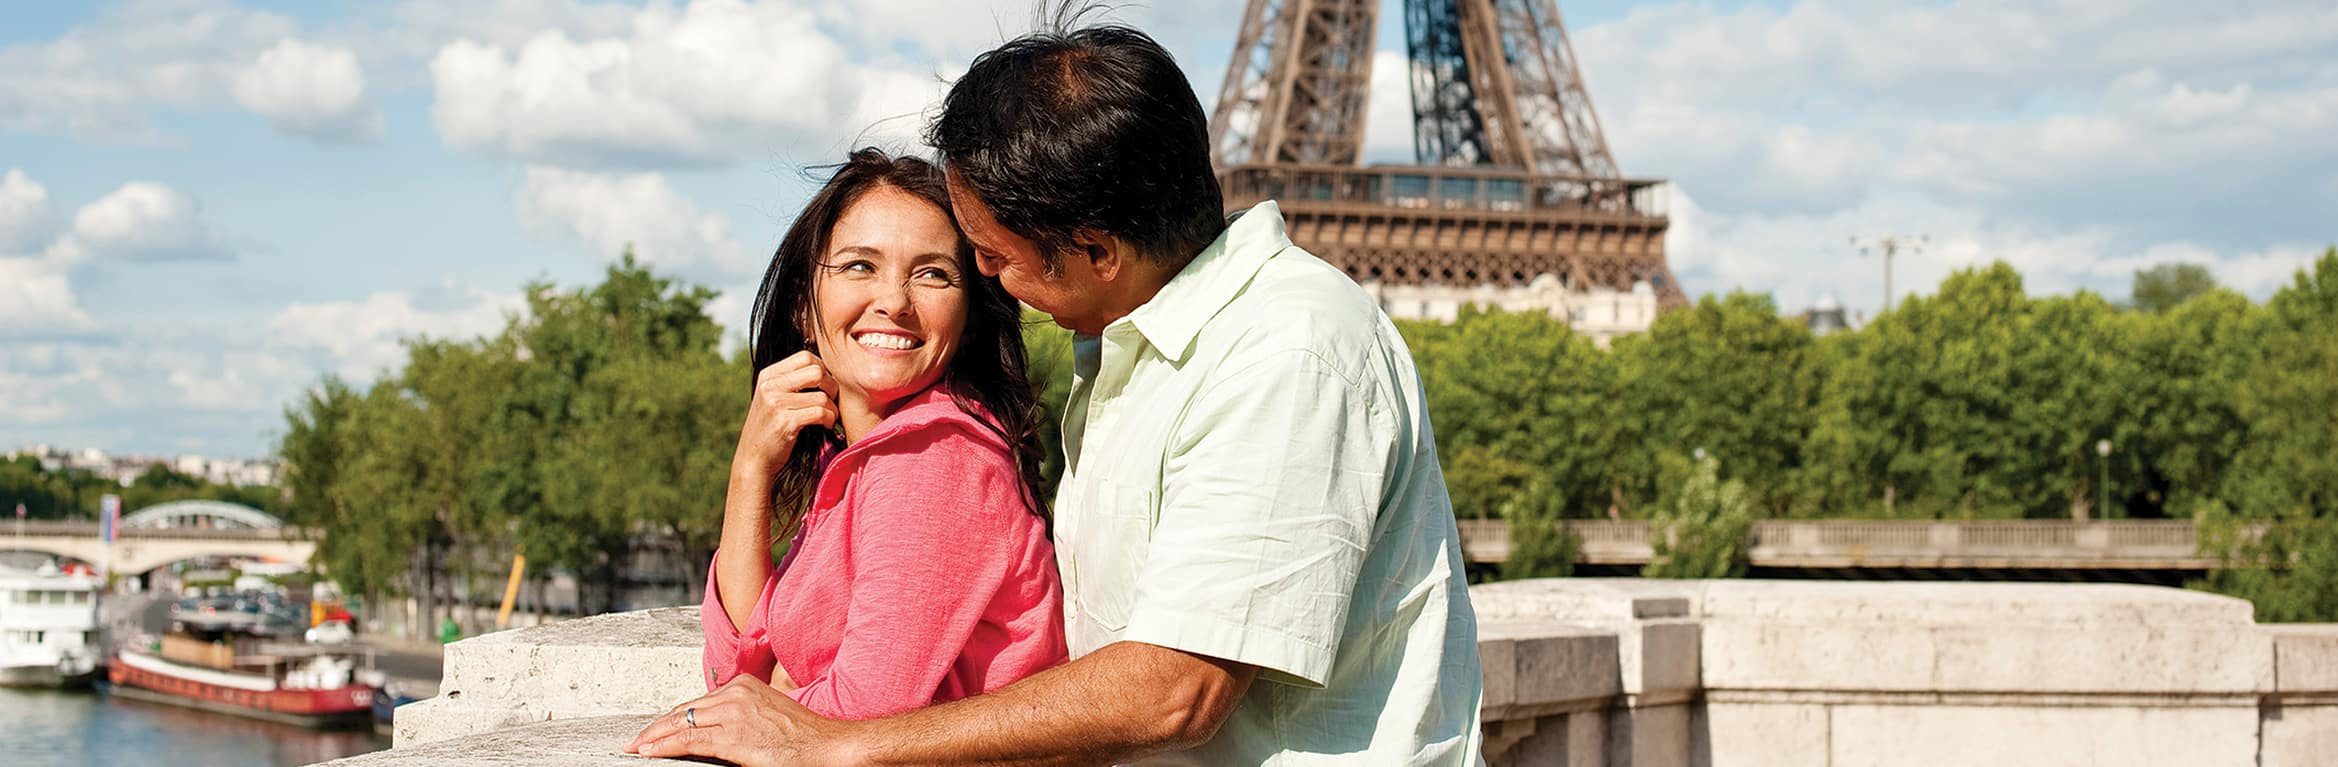 A man and a woman cuddle in front of France's Eiffel Tower in Paris